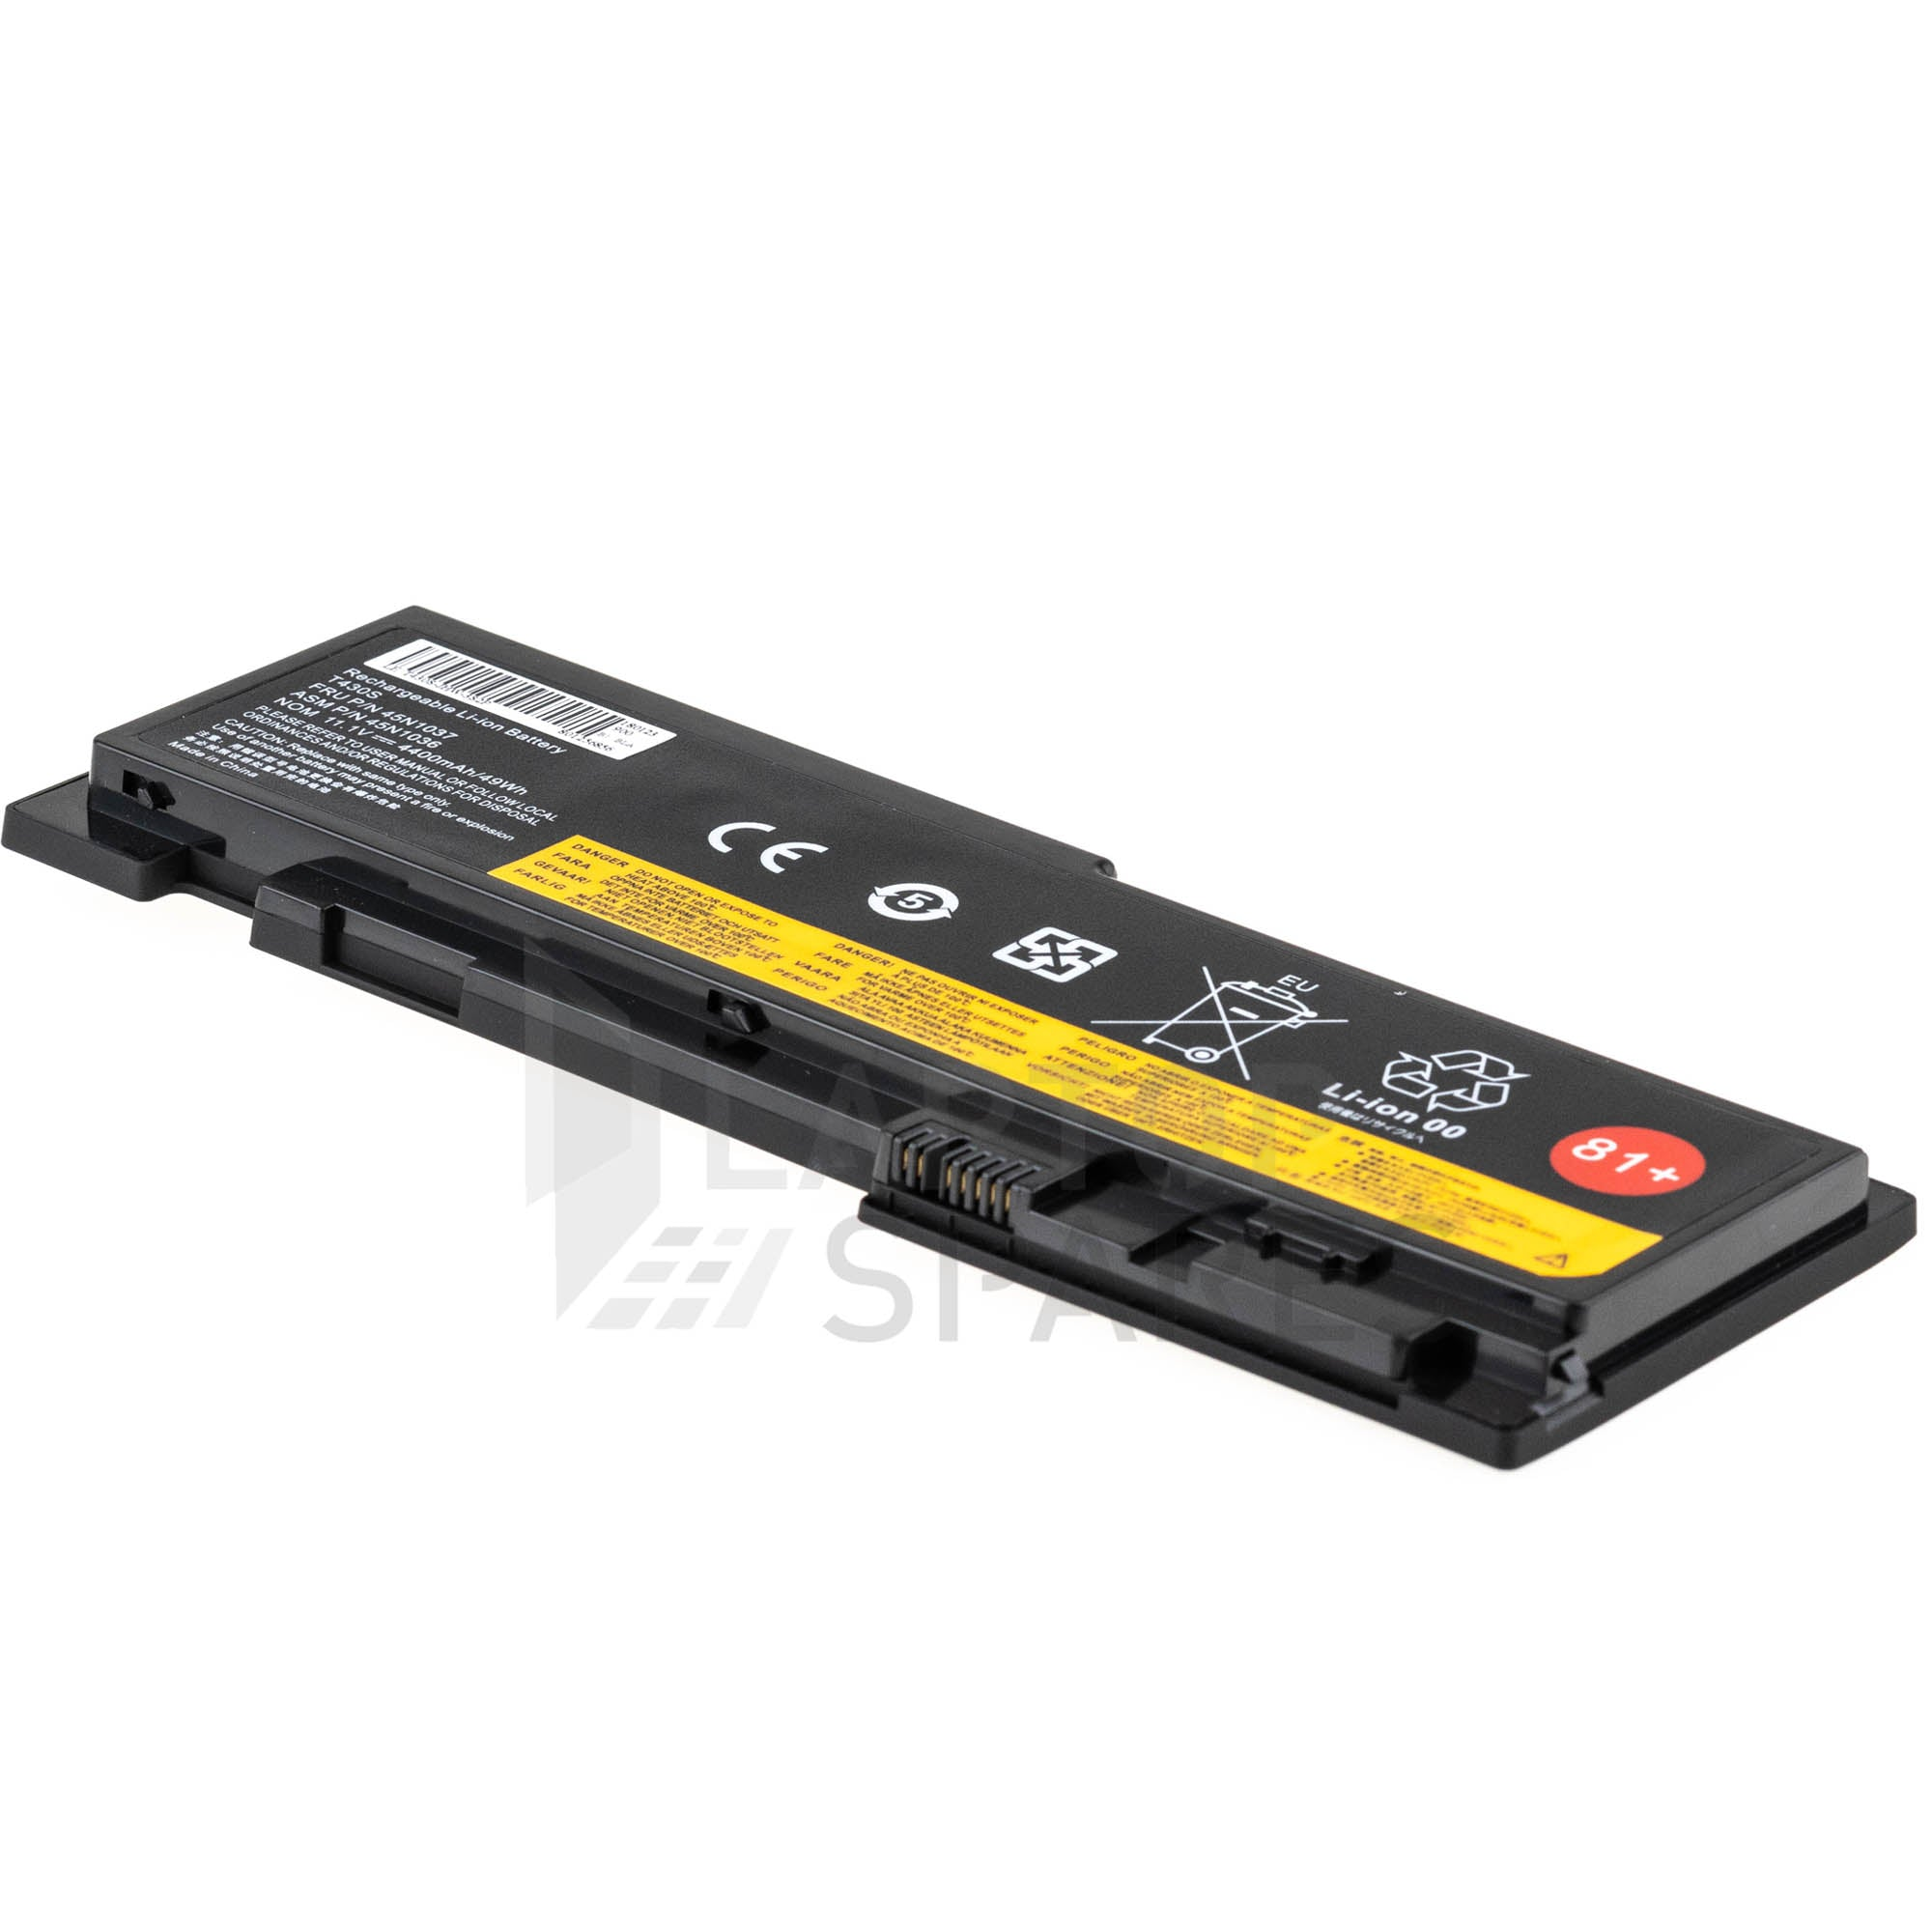 Lenovo ThinkPad T430S 4400mAh 6 Cell Battery